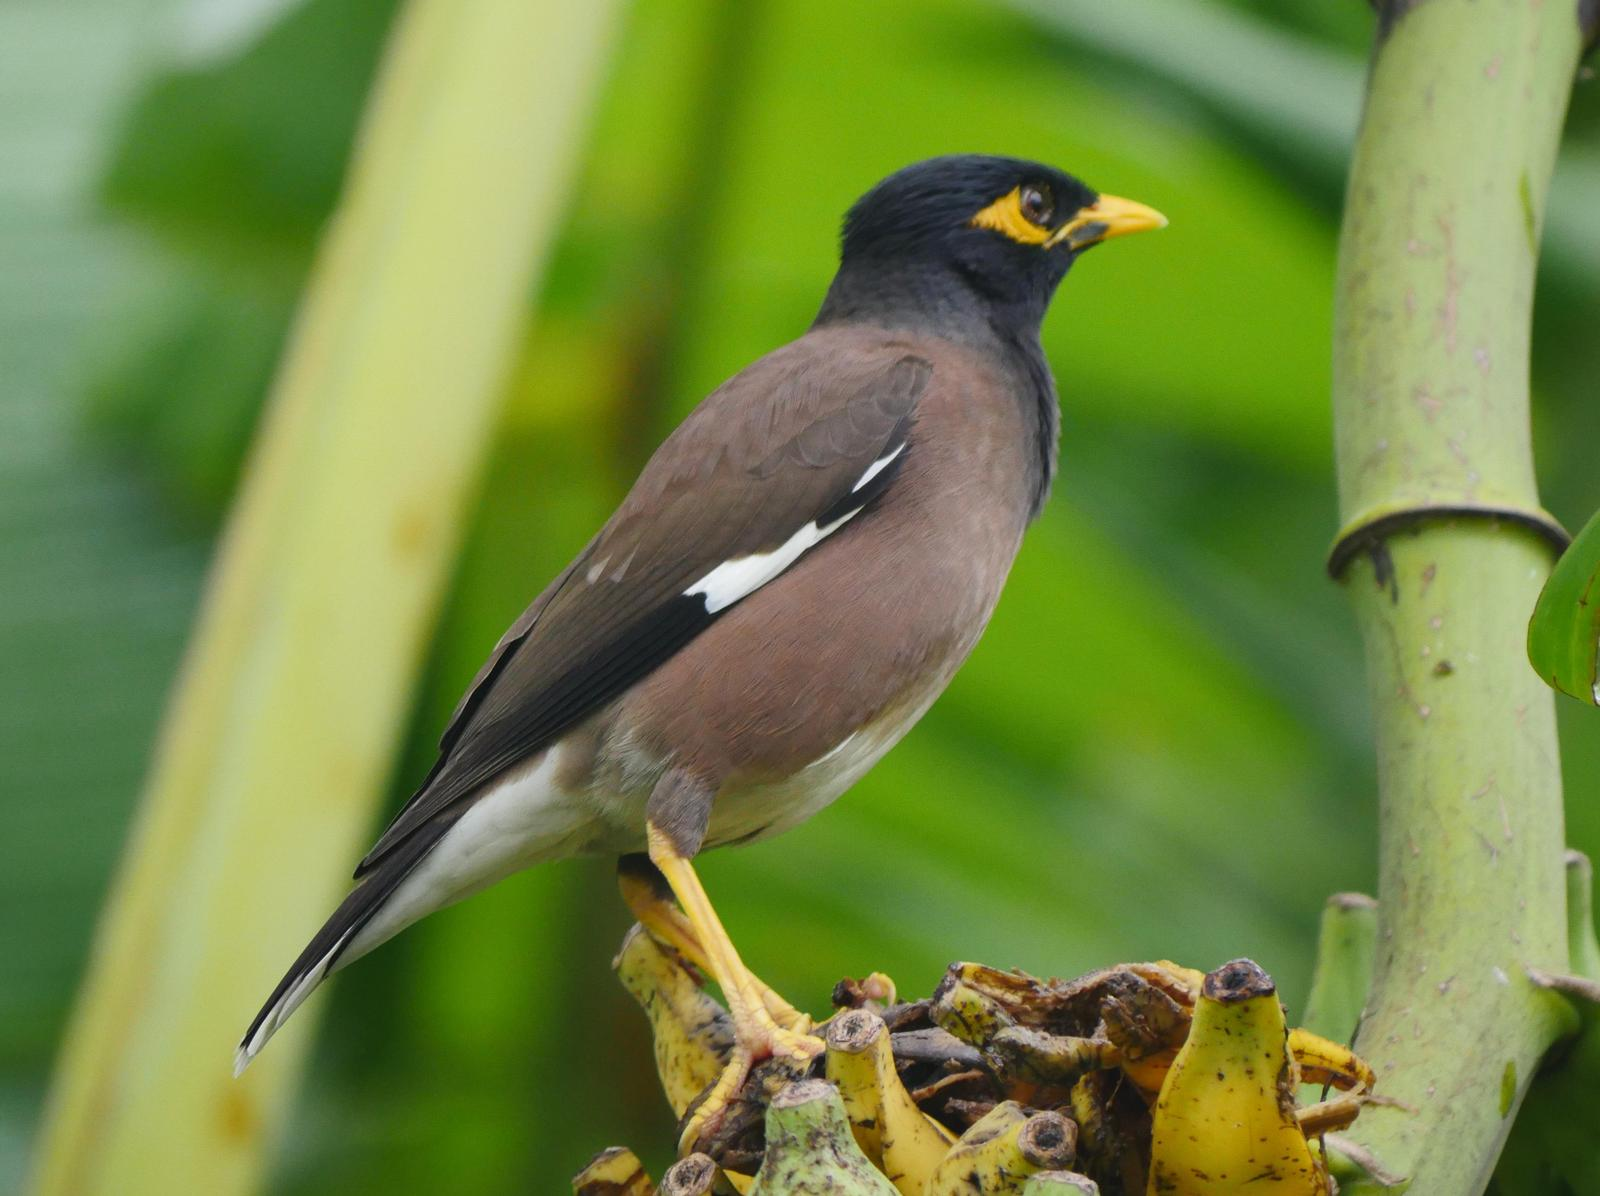 Common Myna Photo by Peter Lowe